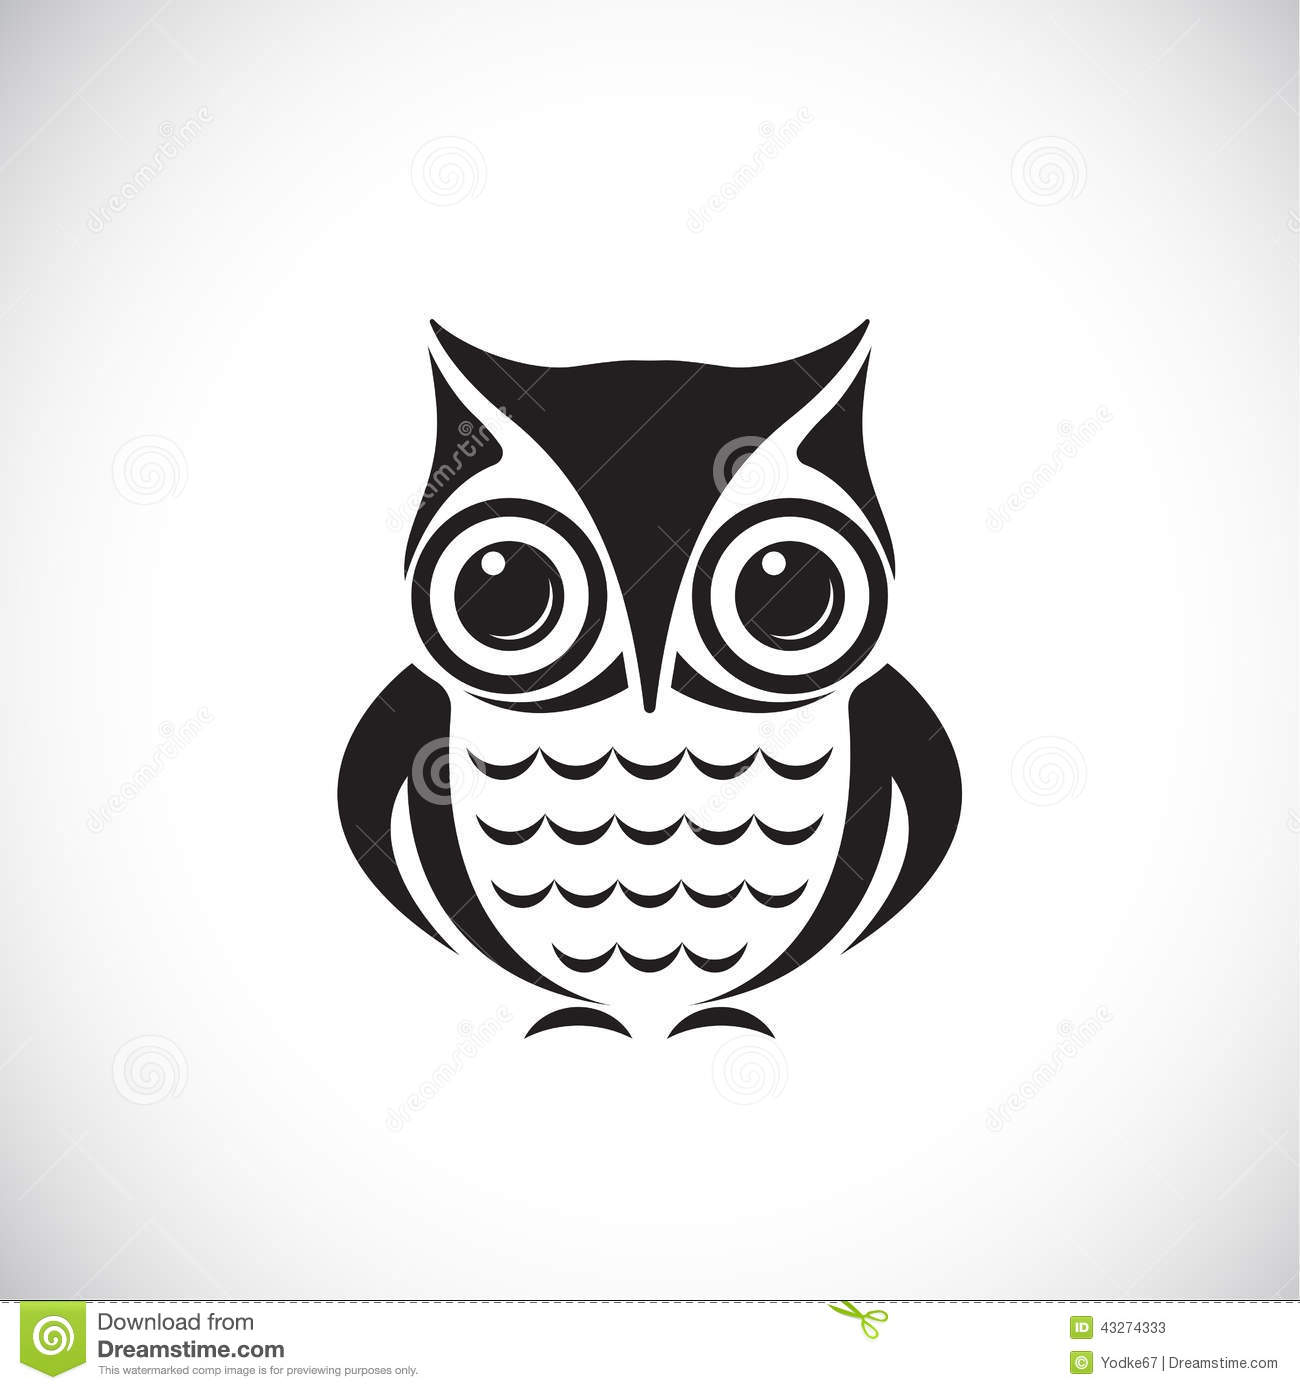 Vector Images Of Owl Stock Vector - Image: 43274333